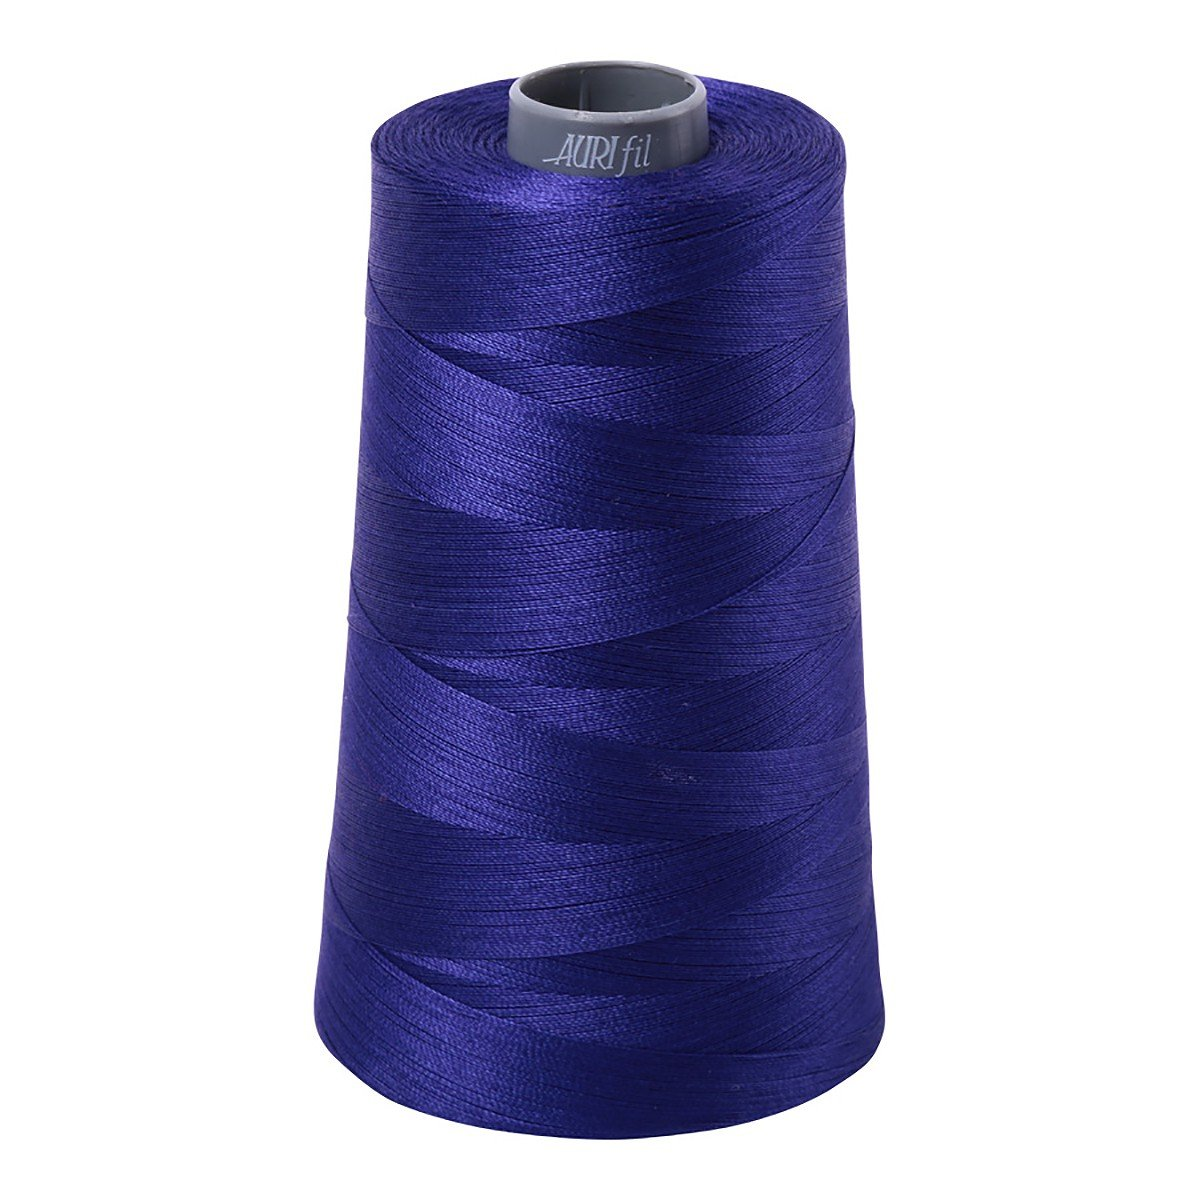 Mako (Cotton) Embroidery Thread 28wt 3609yds Blue Violet